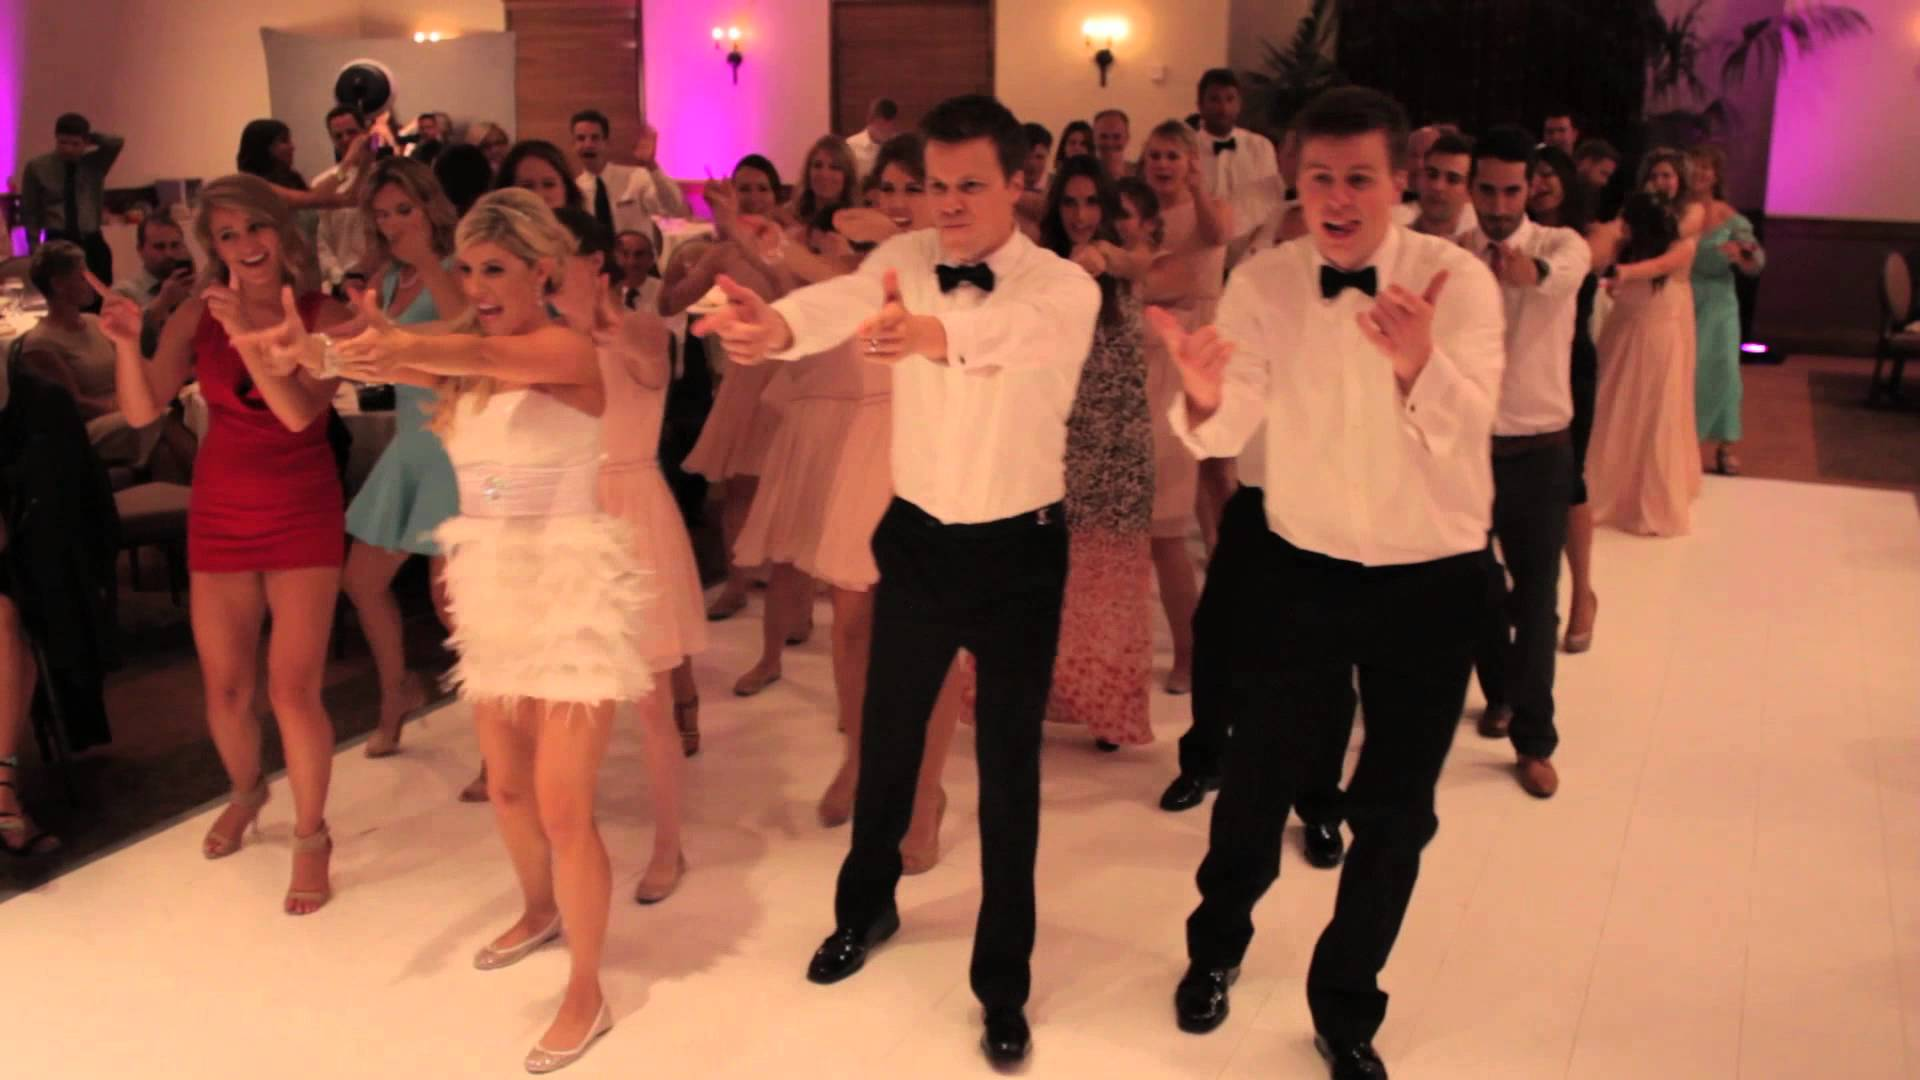 How To Dance At A Wedding.How To Dance At A Wedding The Best Wedding Picture In The